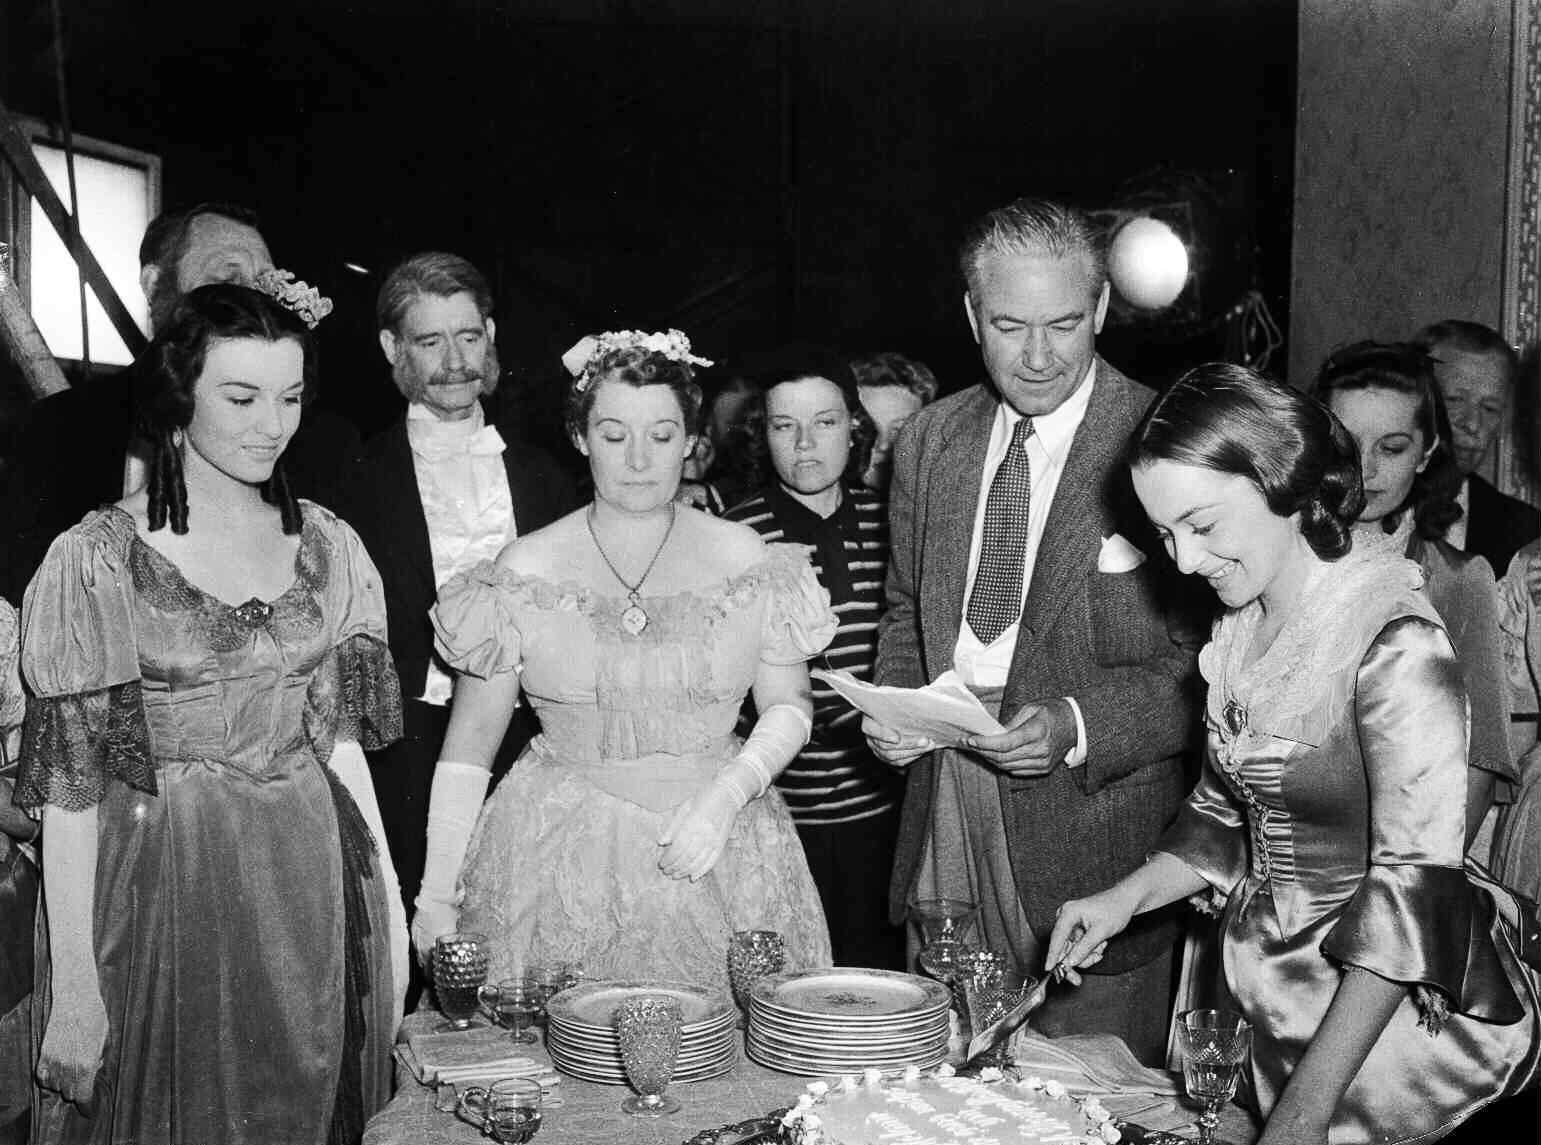 Victor Fleming, second from right, and Olivia de Havilland, right, on the set of Gone with the Wind in 1939.